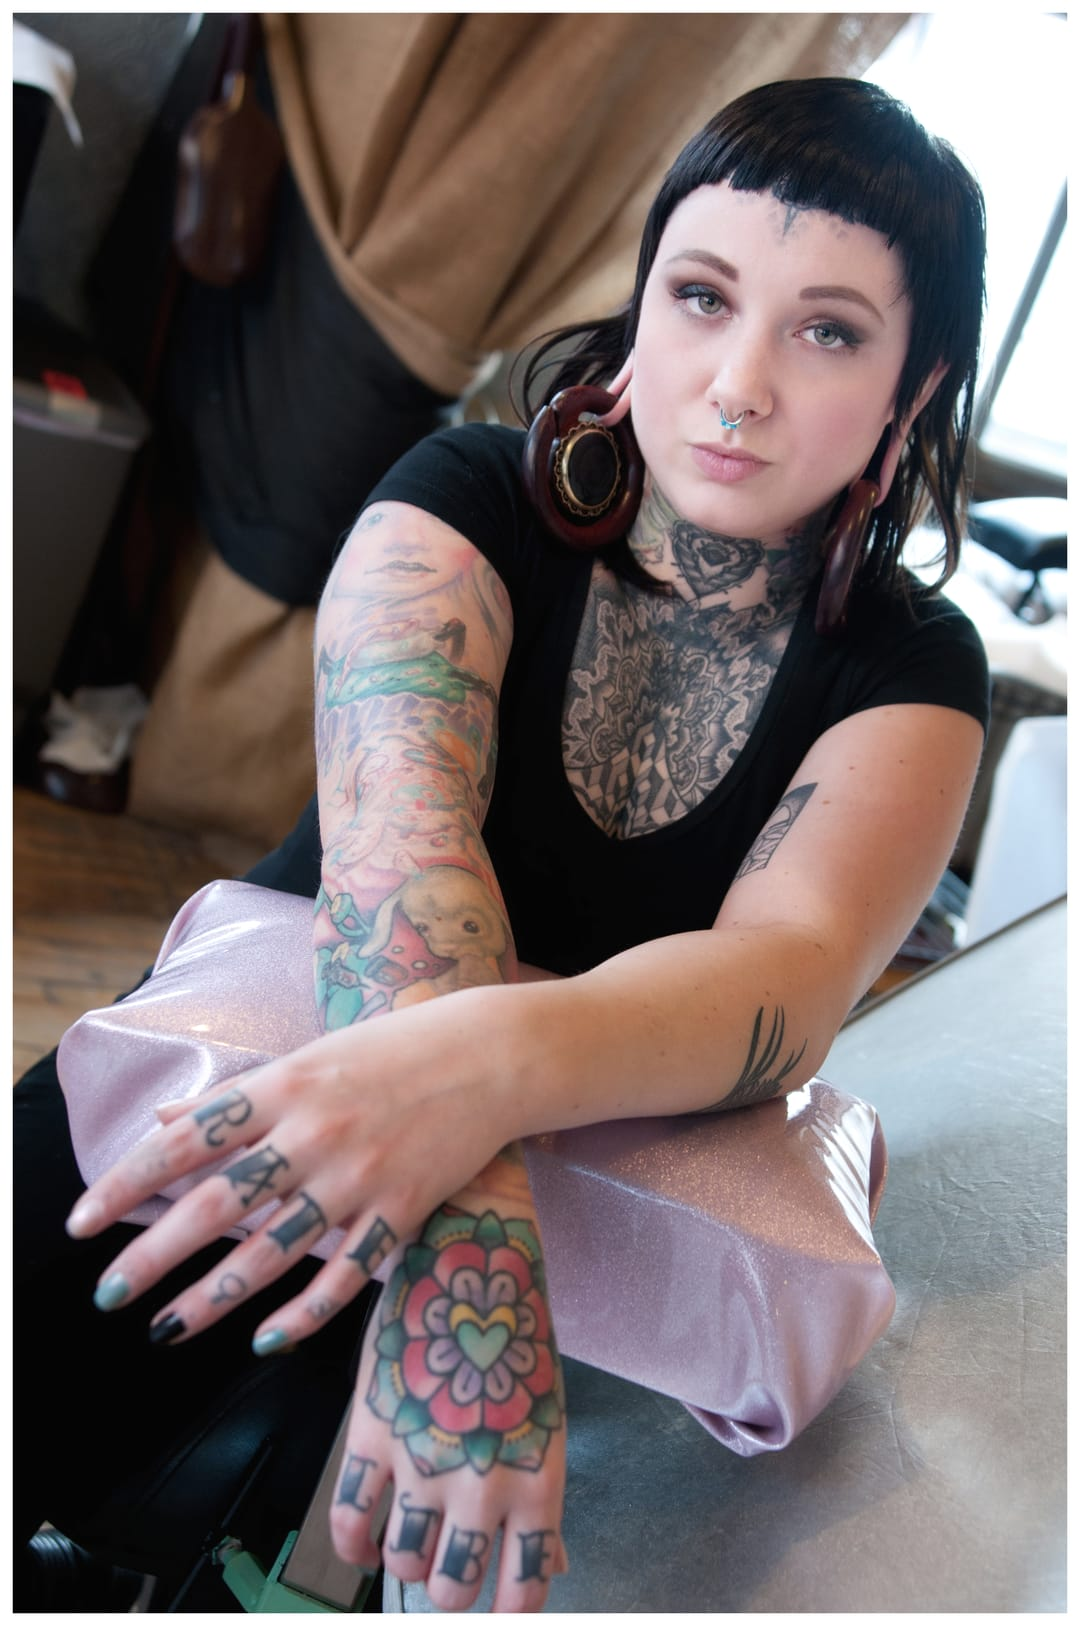 Linnea Pecsenye looks just as beautiful as her works! <3 Would love to get a tattoo from her someday! <3